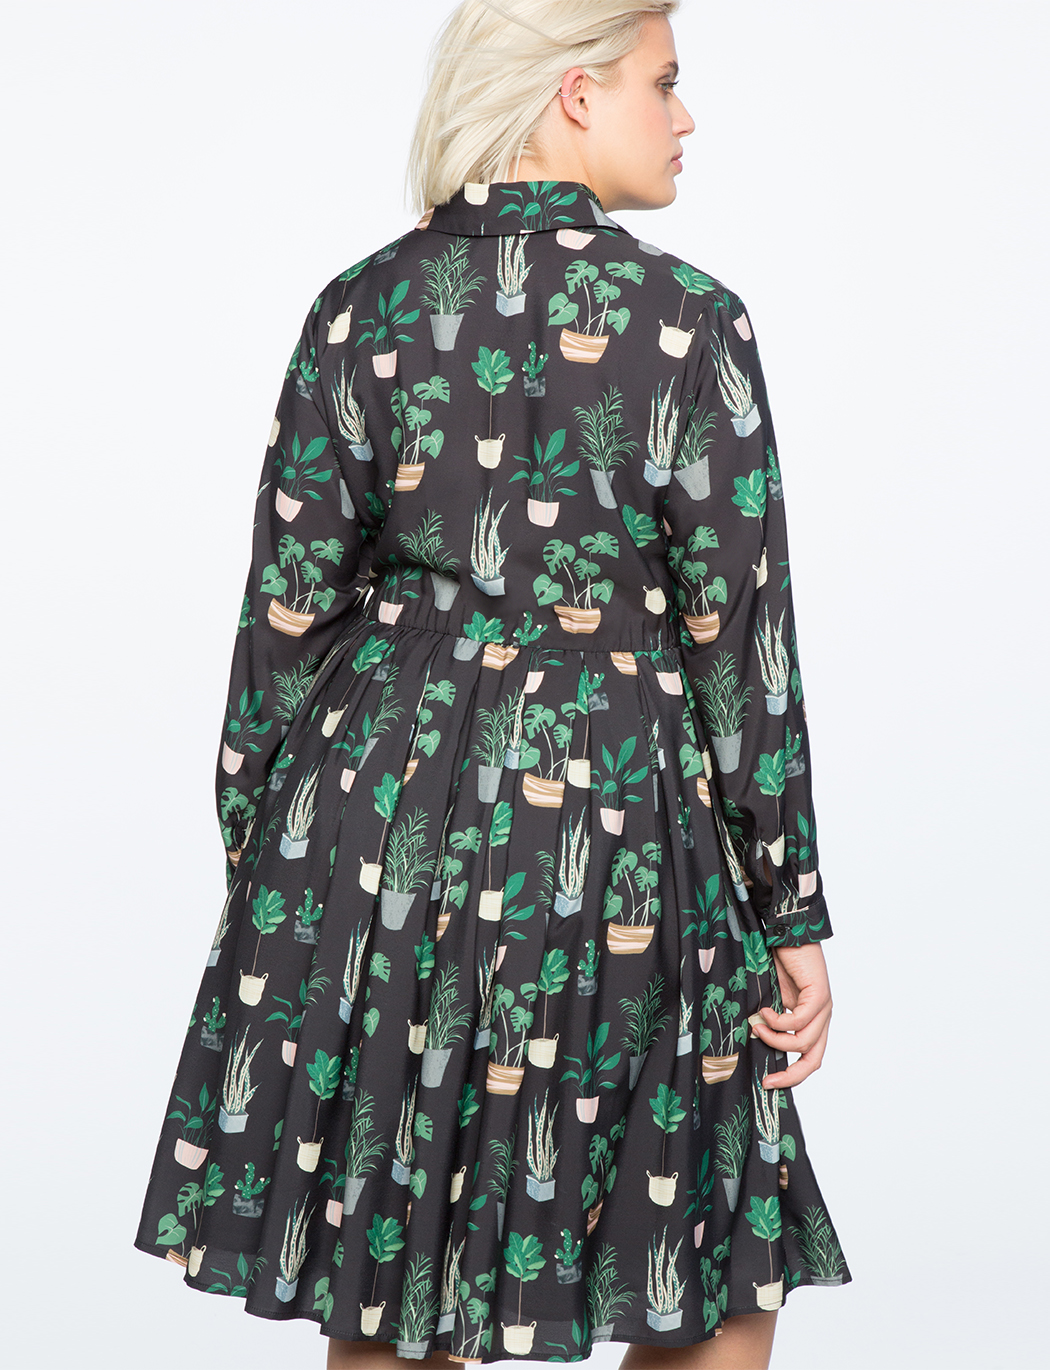 Long Sleeve Printed Fit and Flare Dress